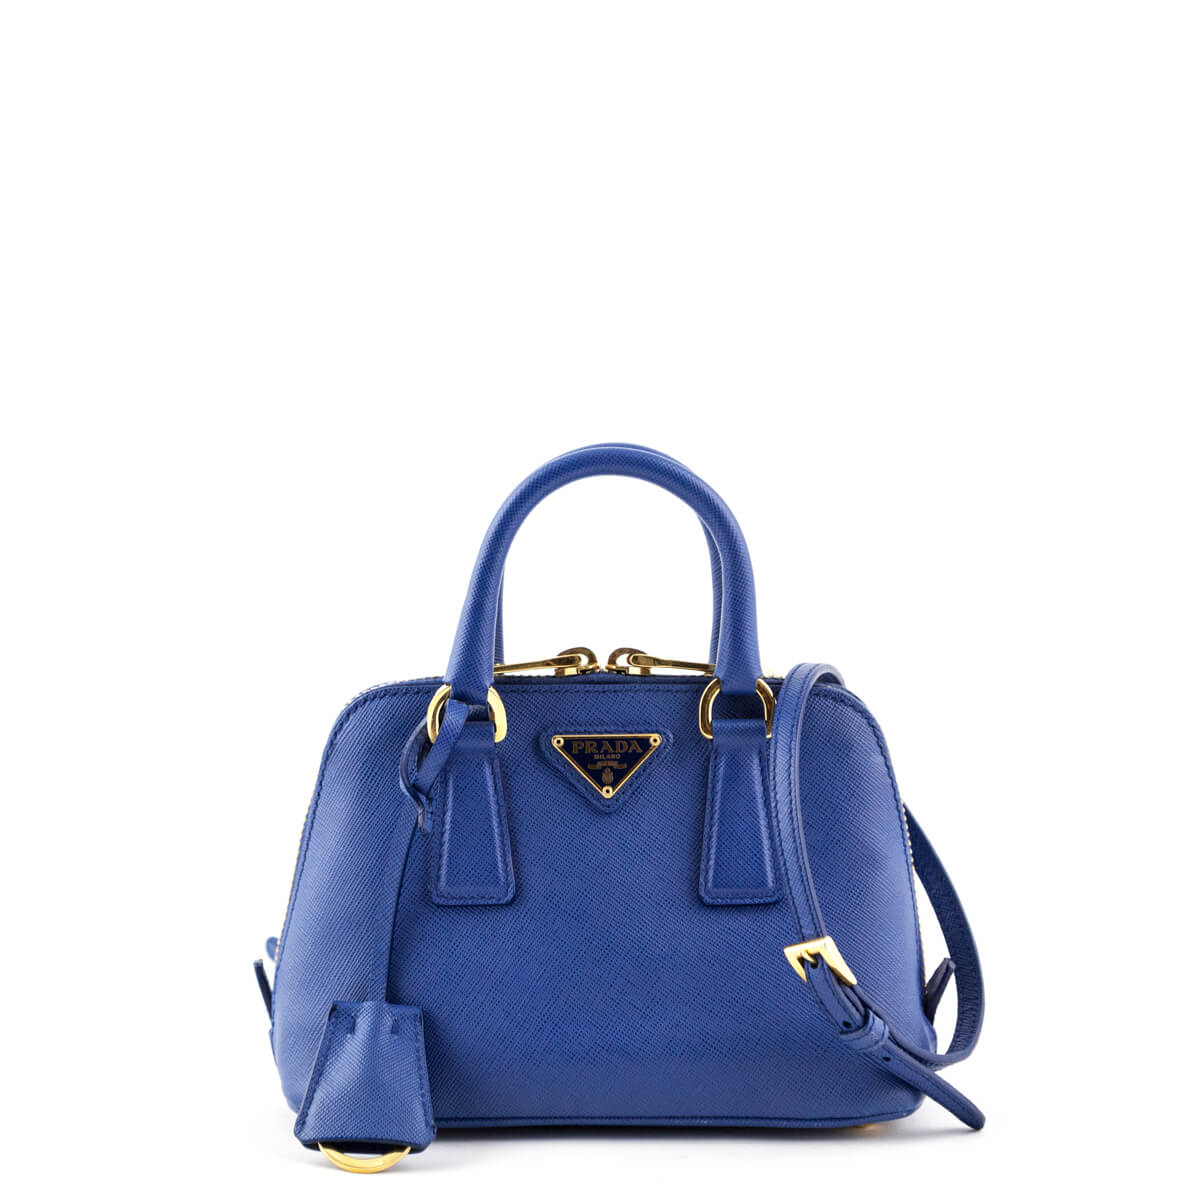 a91966a51793 Prada Blue Saffiano Lux Mini Promenade Bag - LOVE that BAG - Preowned  Authentic Designer Handbags ...